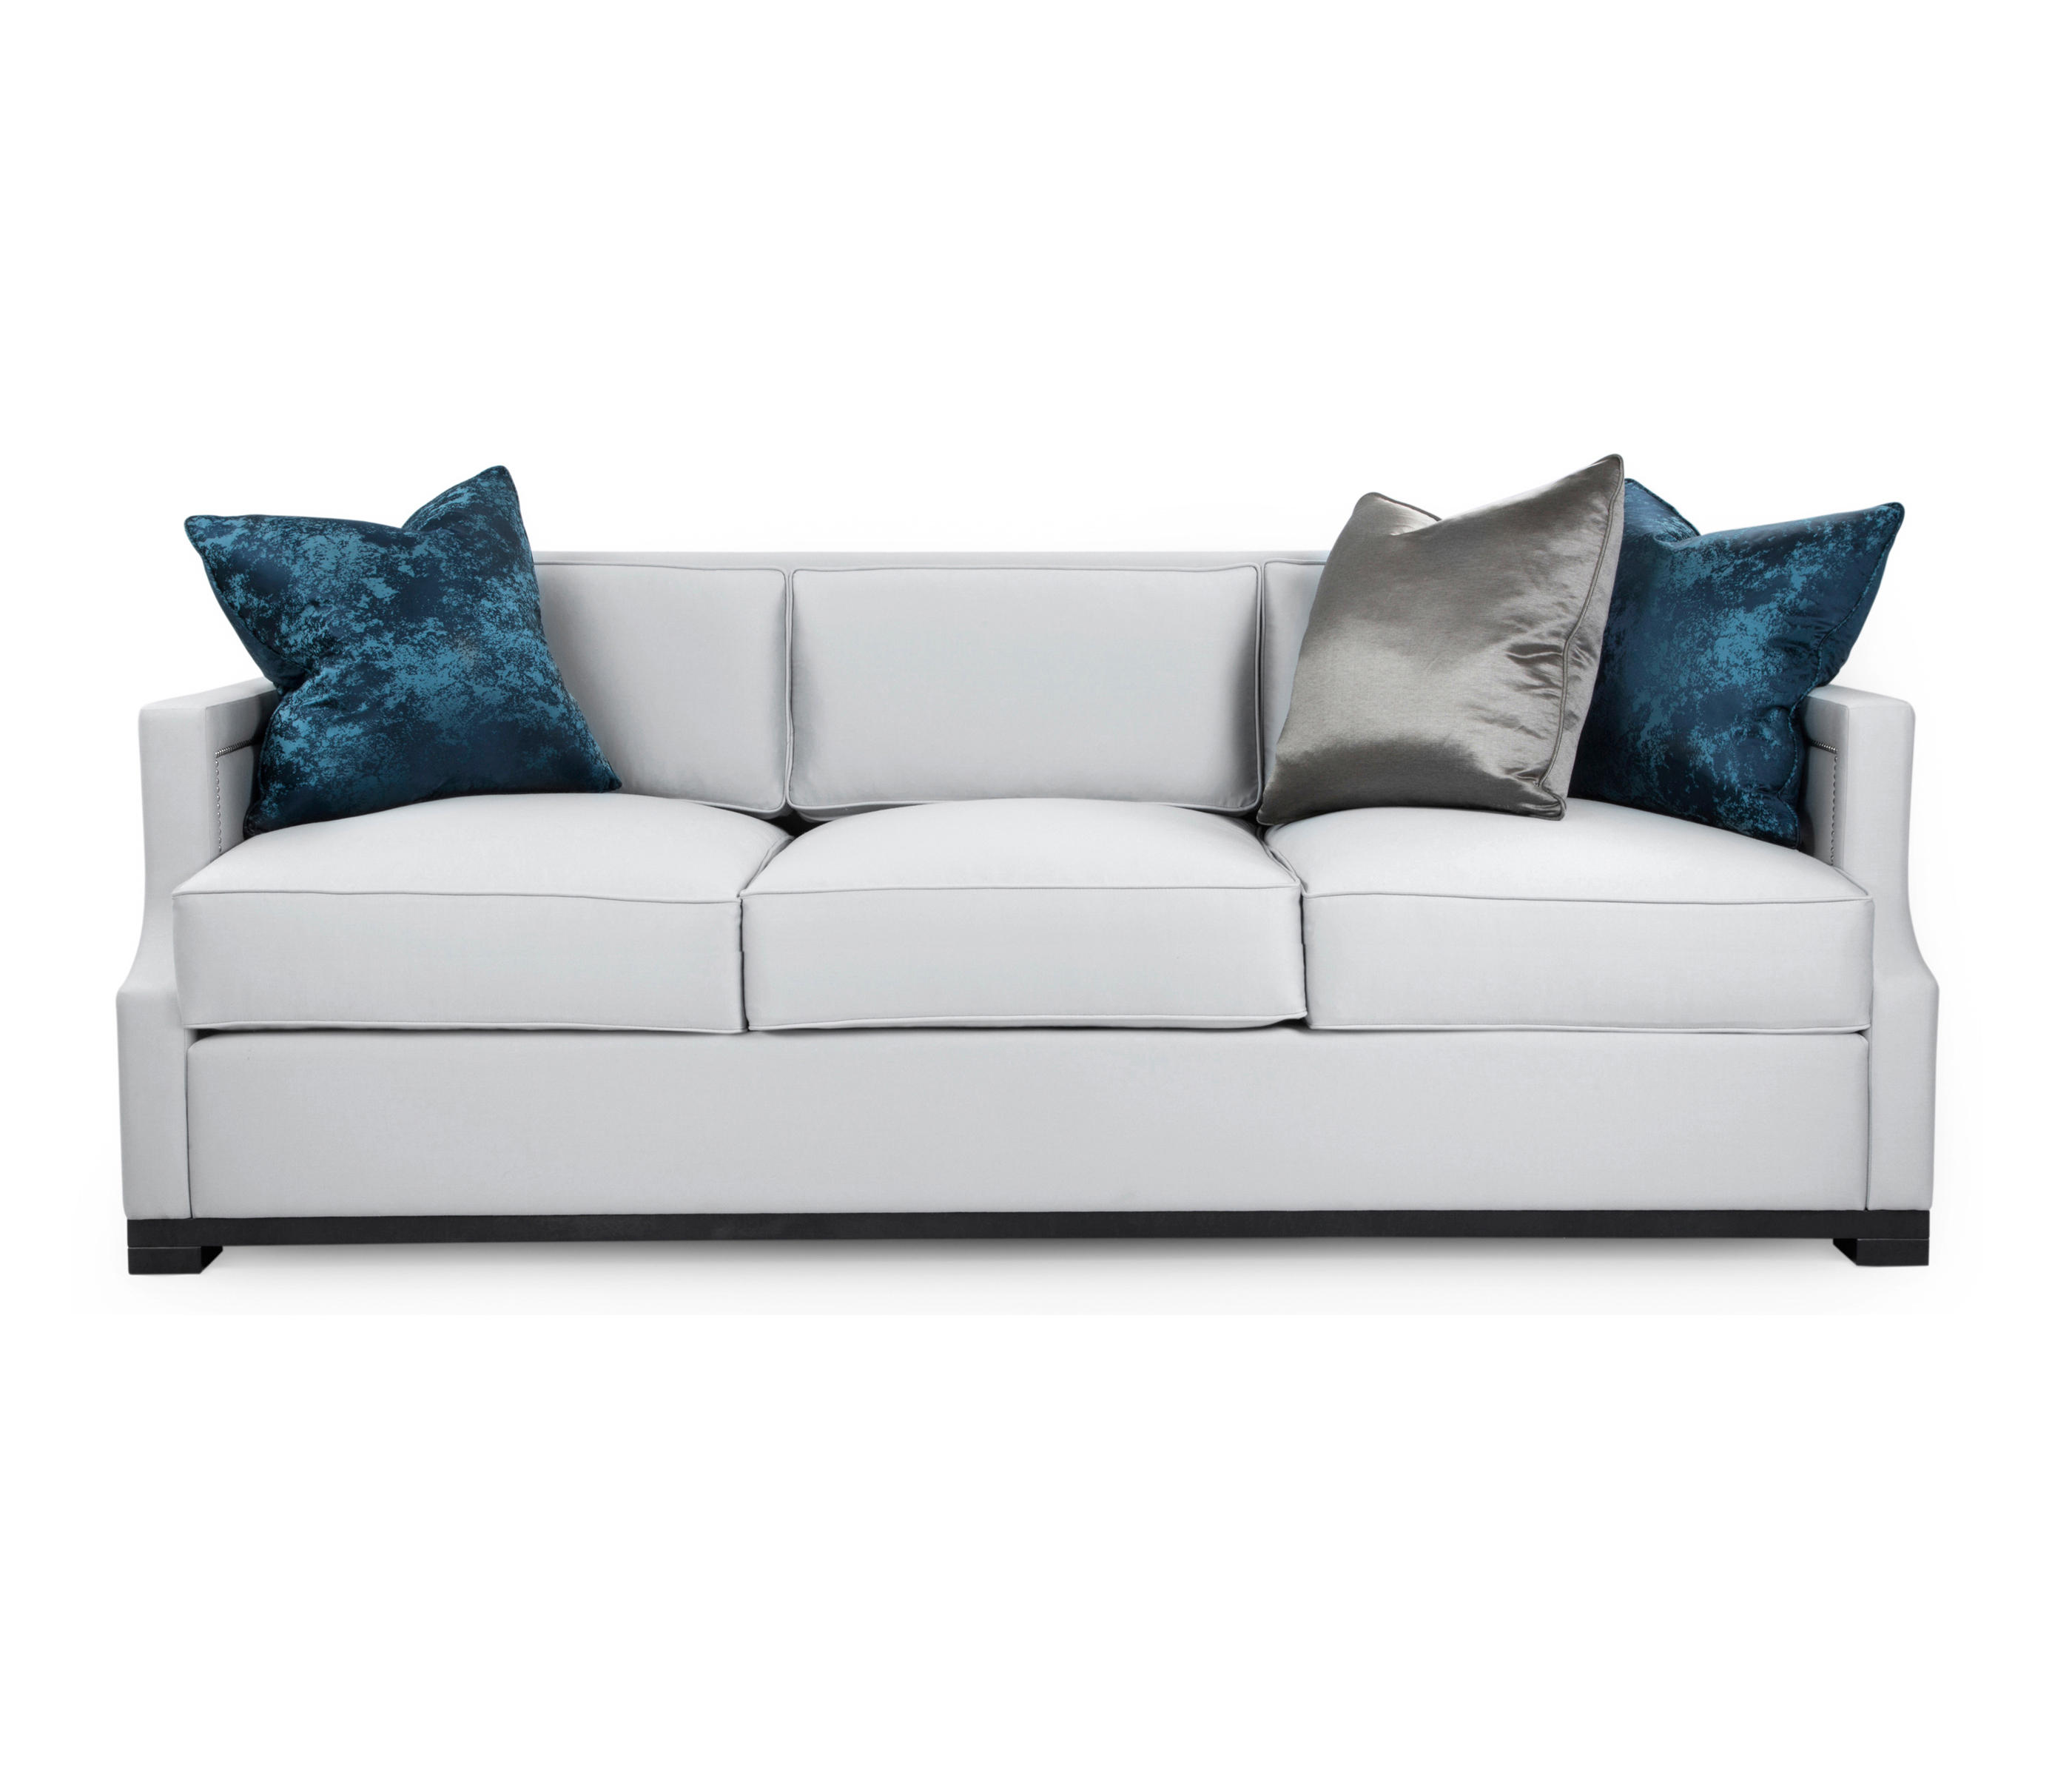 BELVEDERE SOFA Lounge sofas from The Sofa & Chair pany Ltd